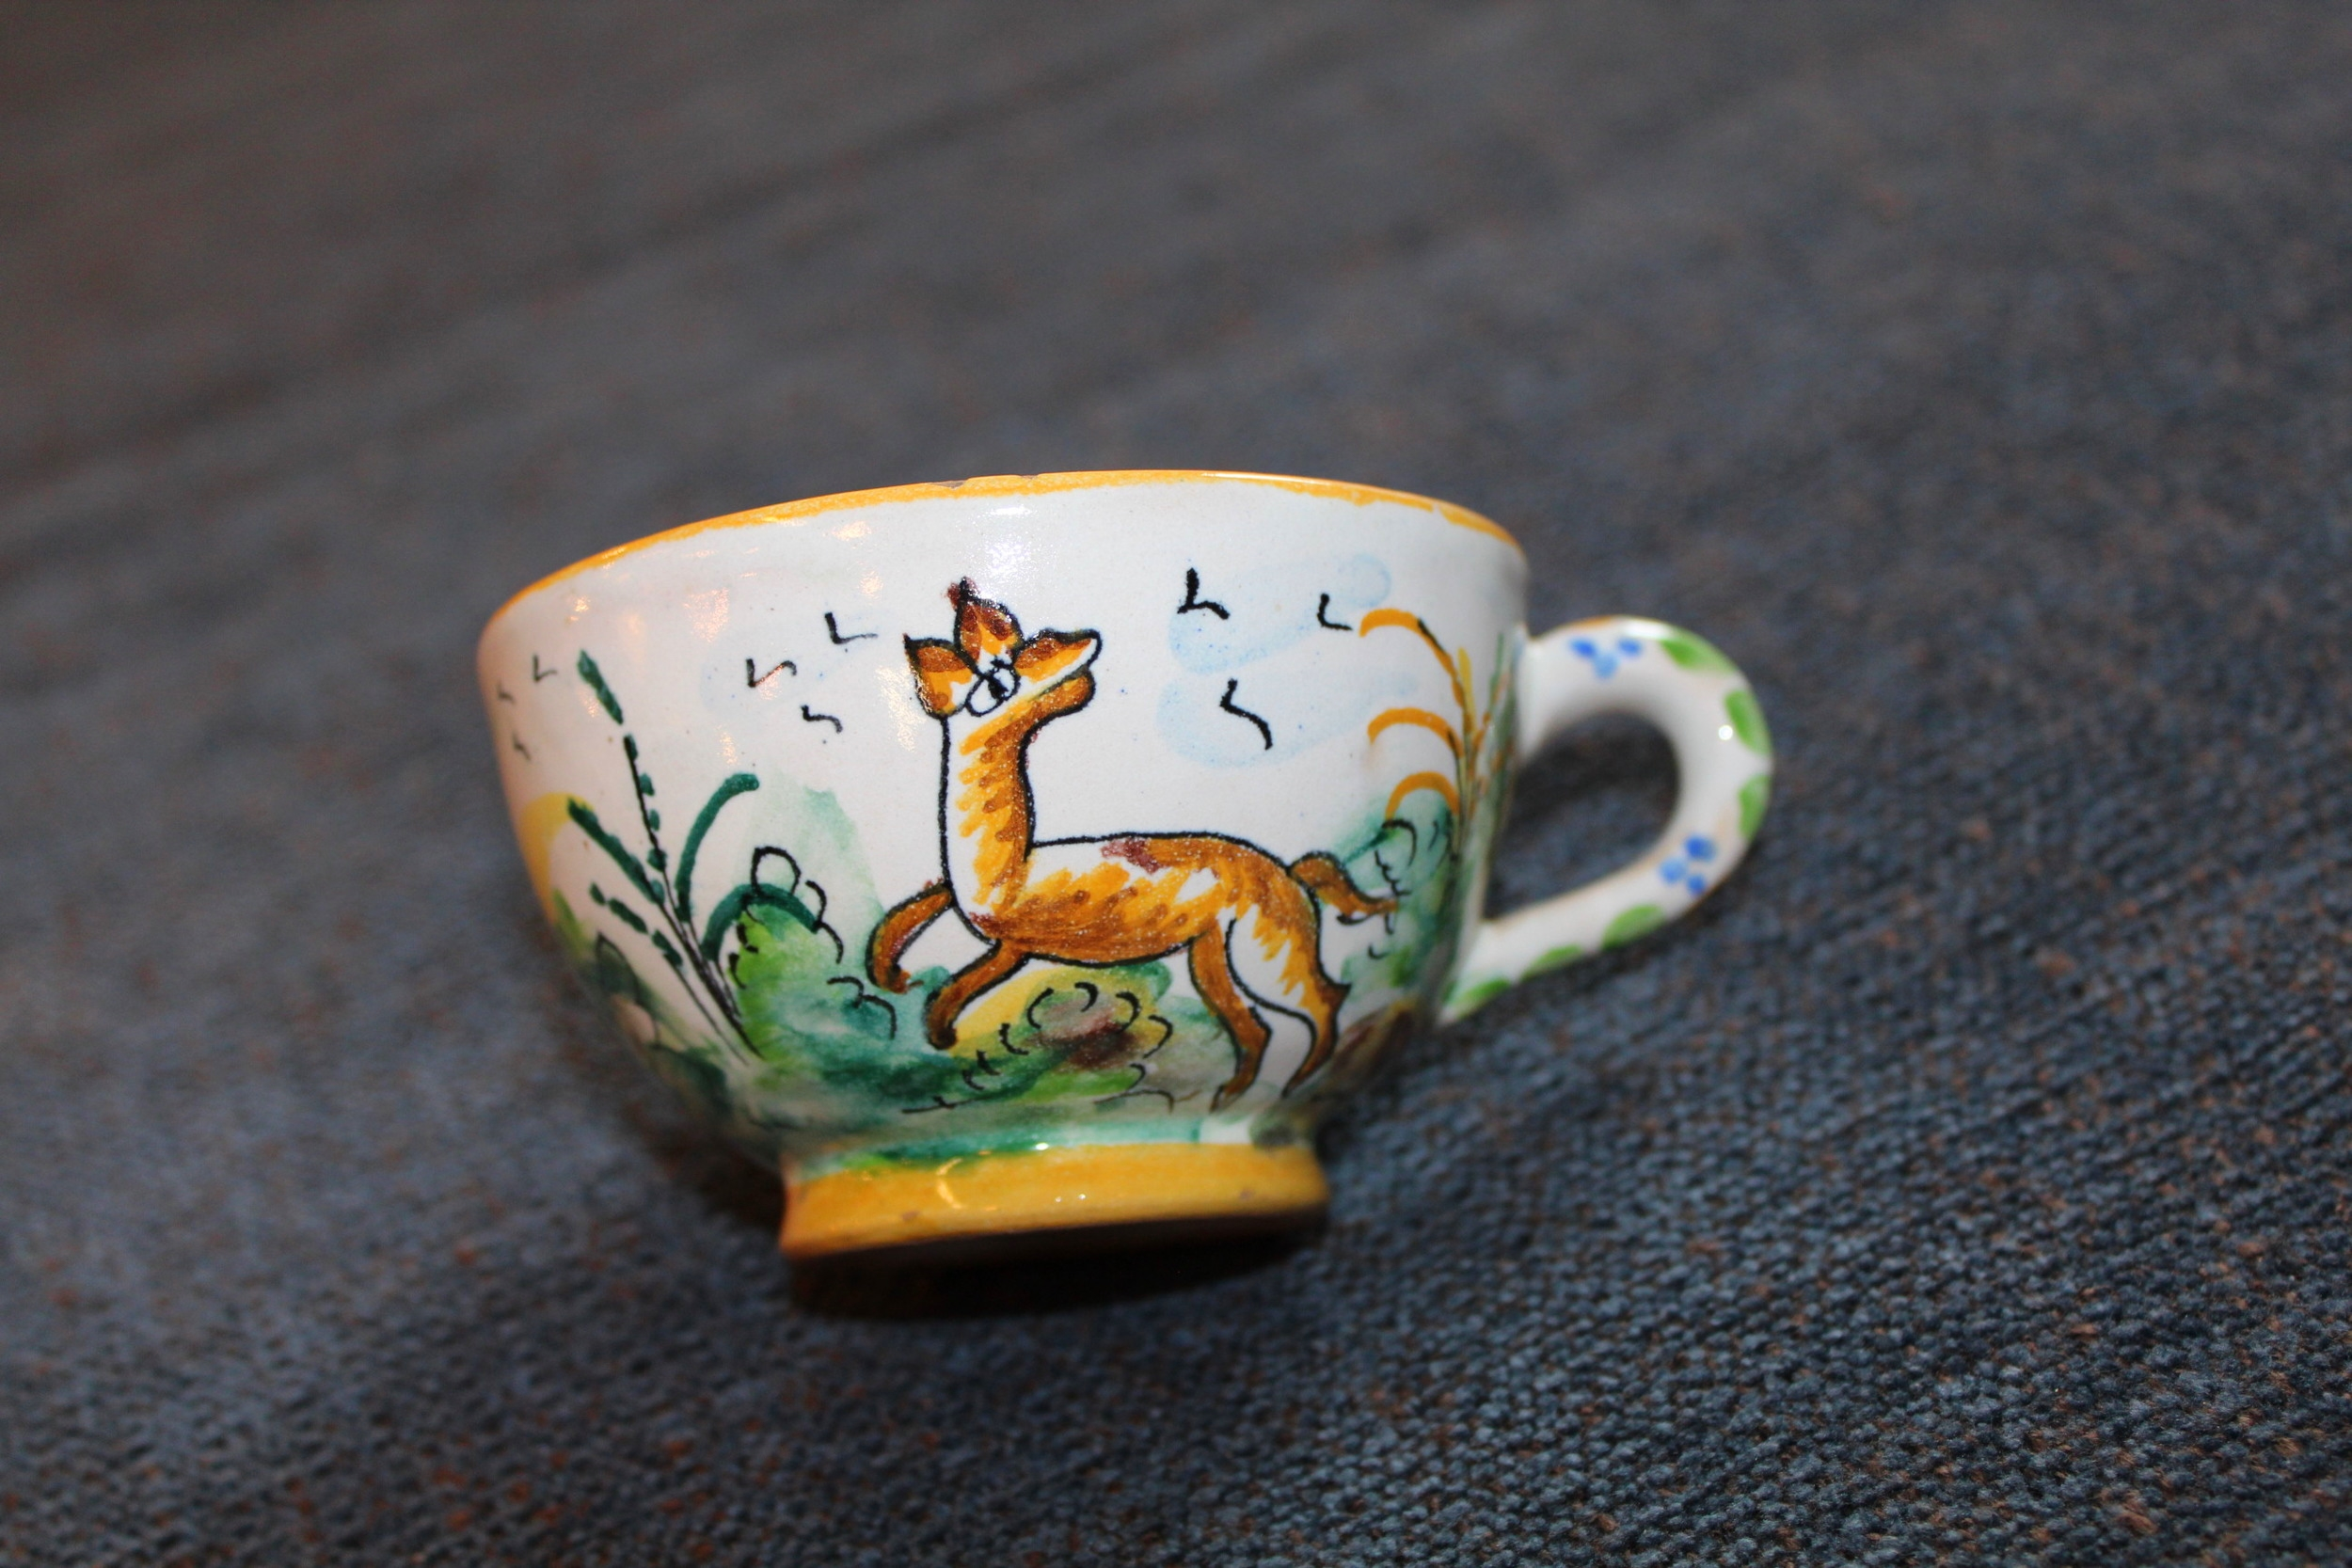 Handpainted Spanish Teacup